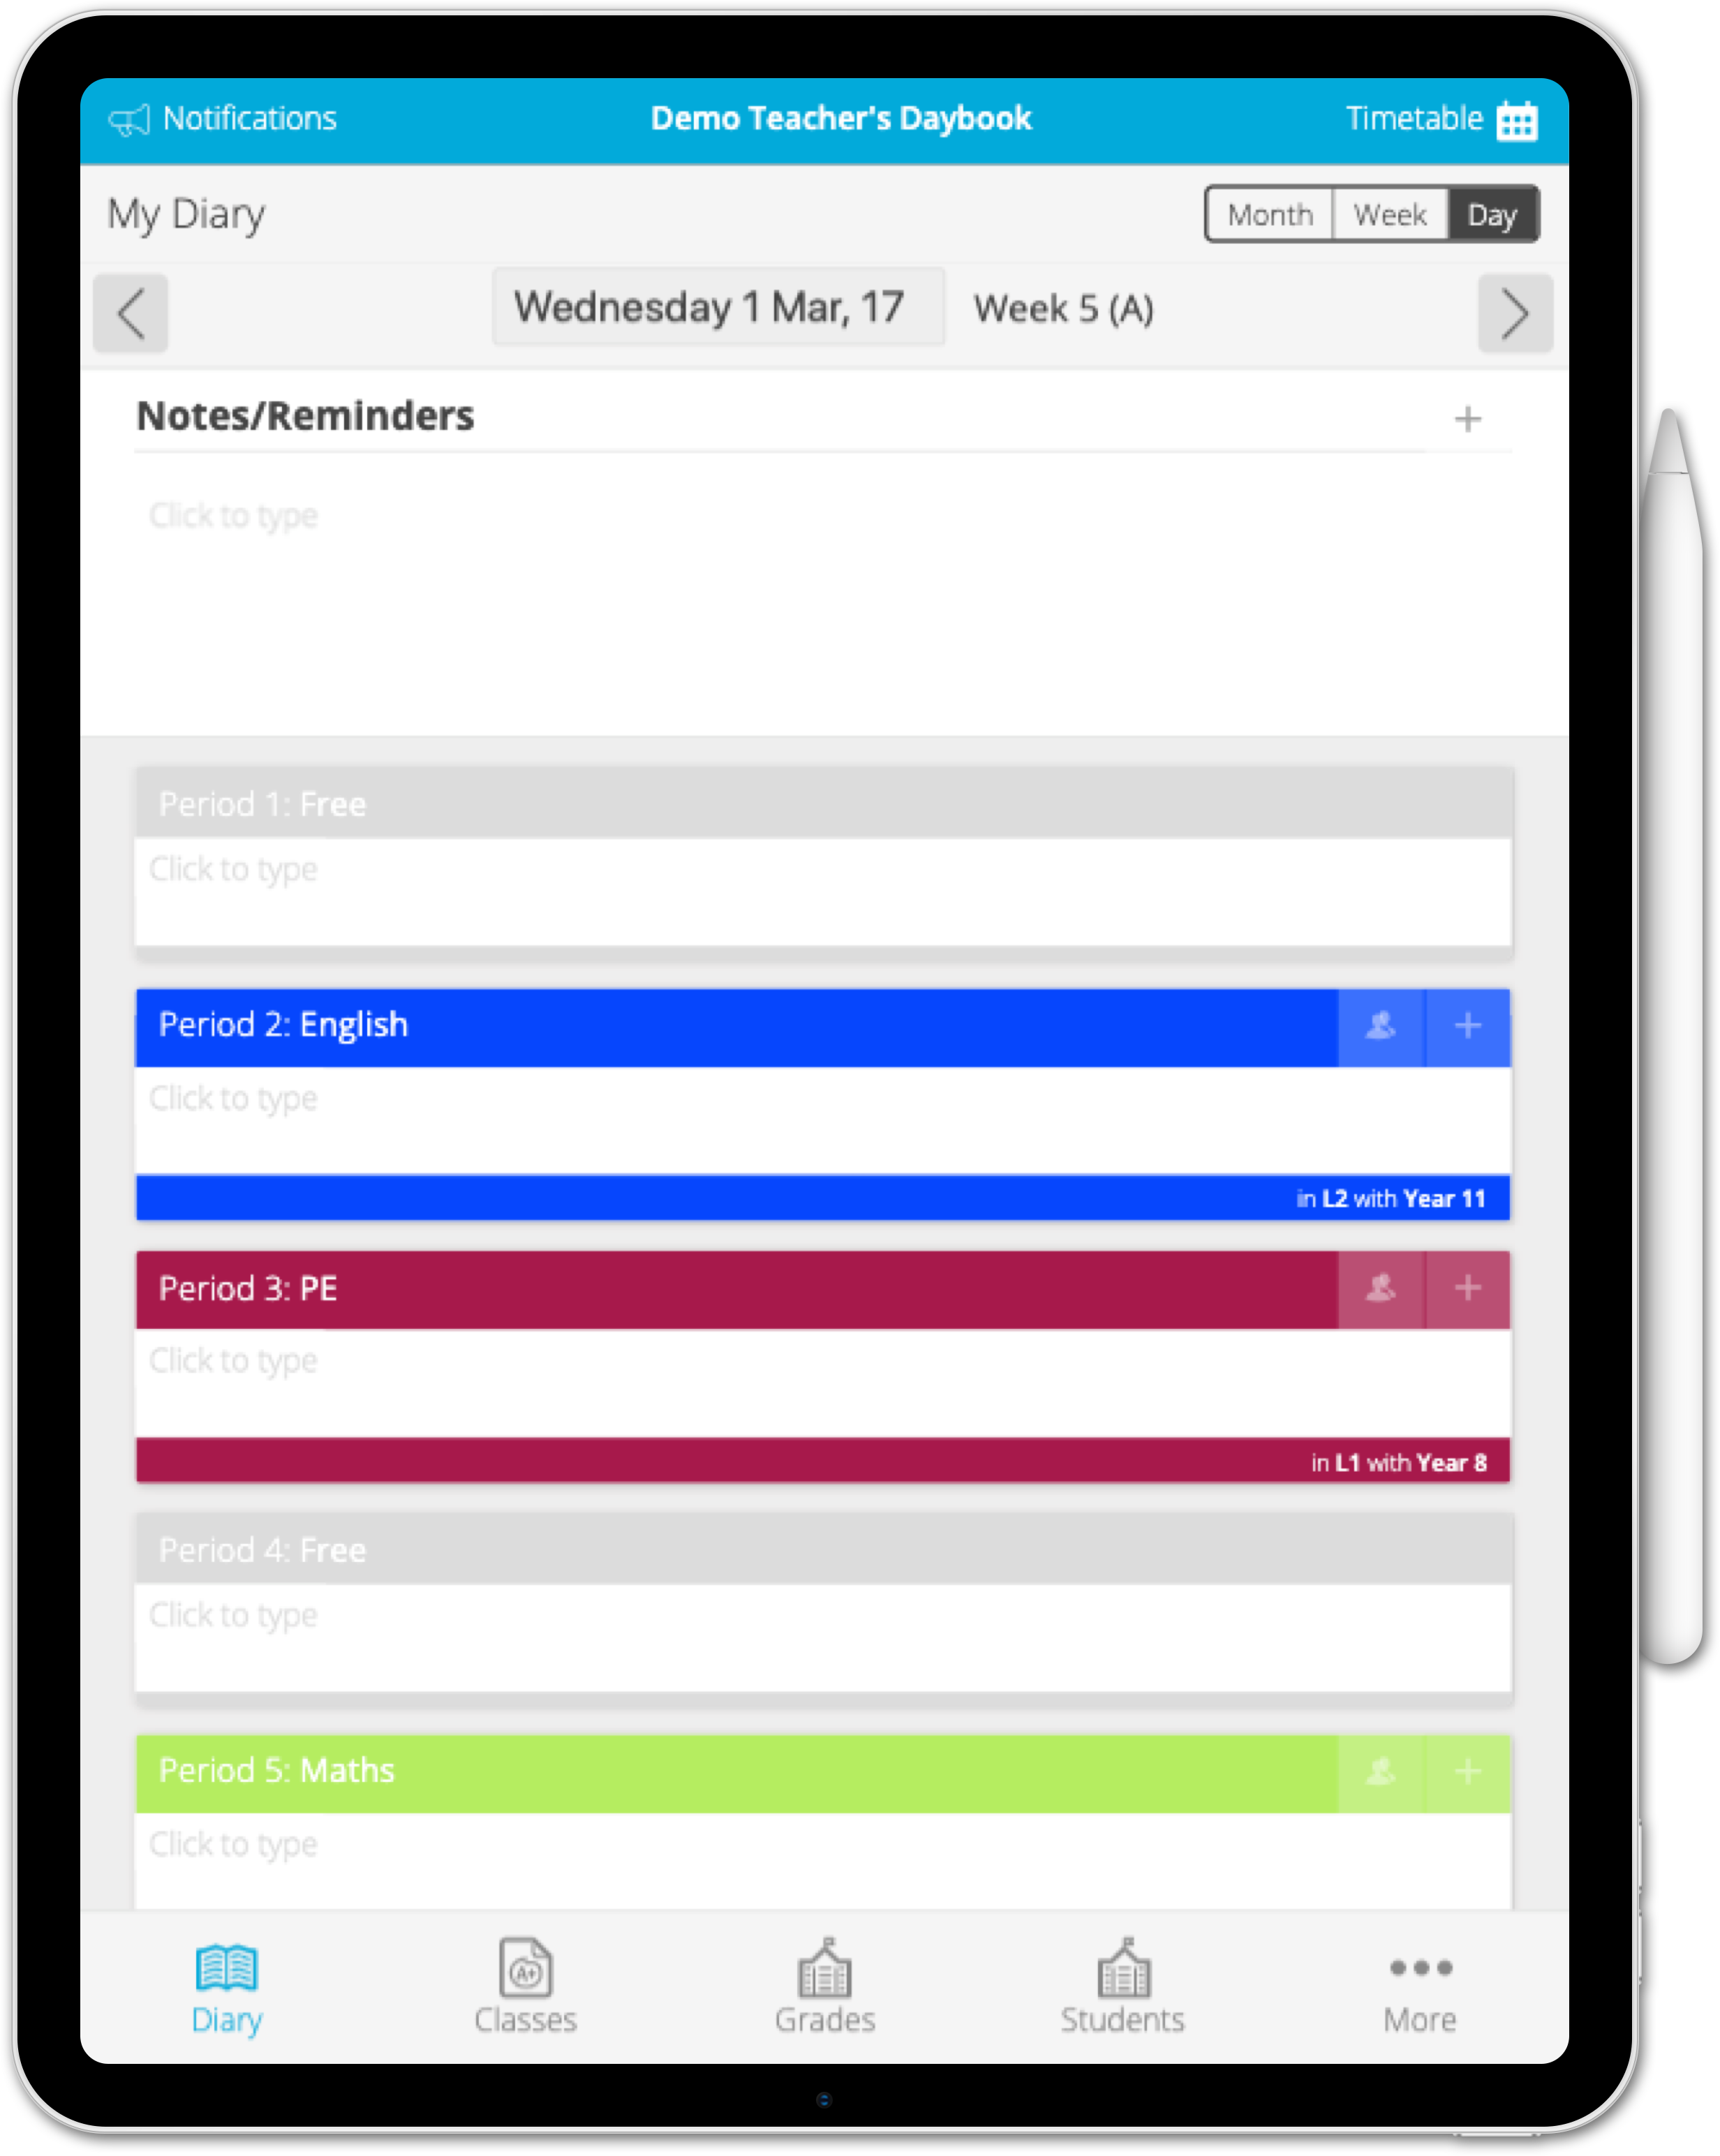 Daybook - the Teacher's Daily Planner